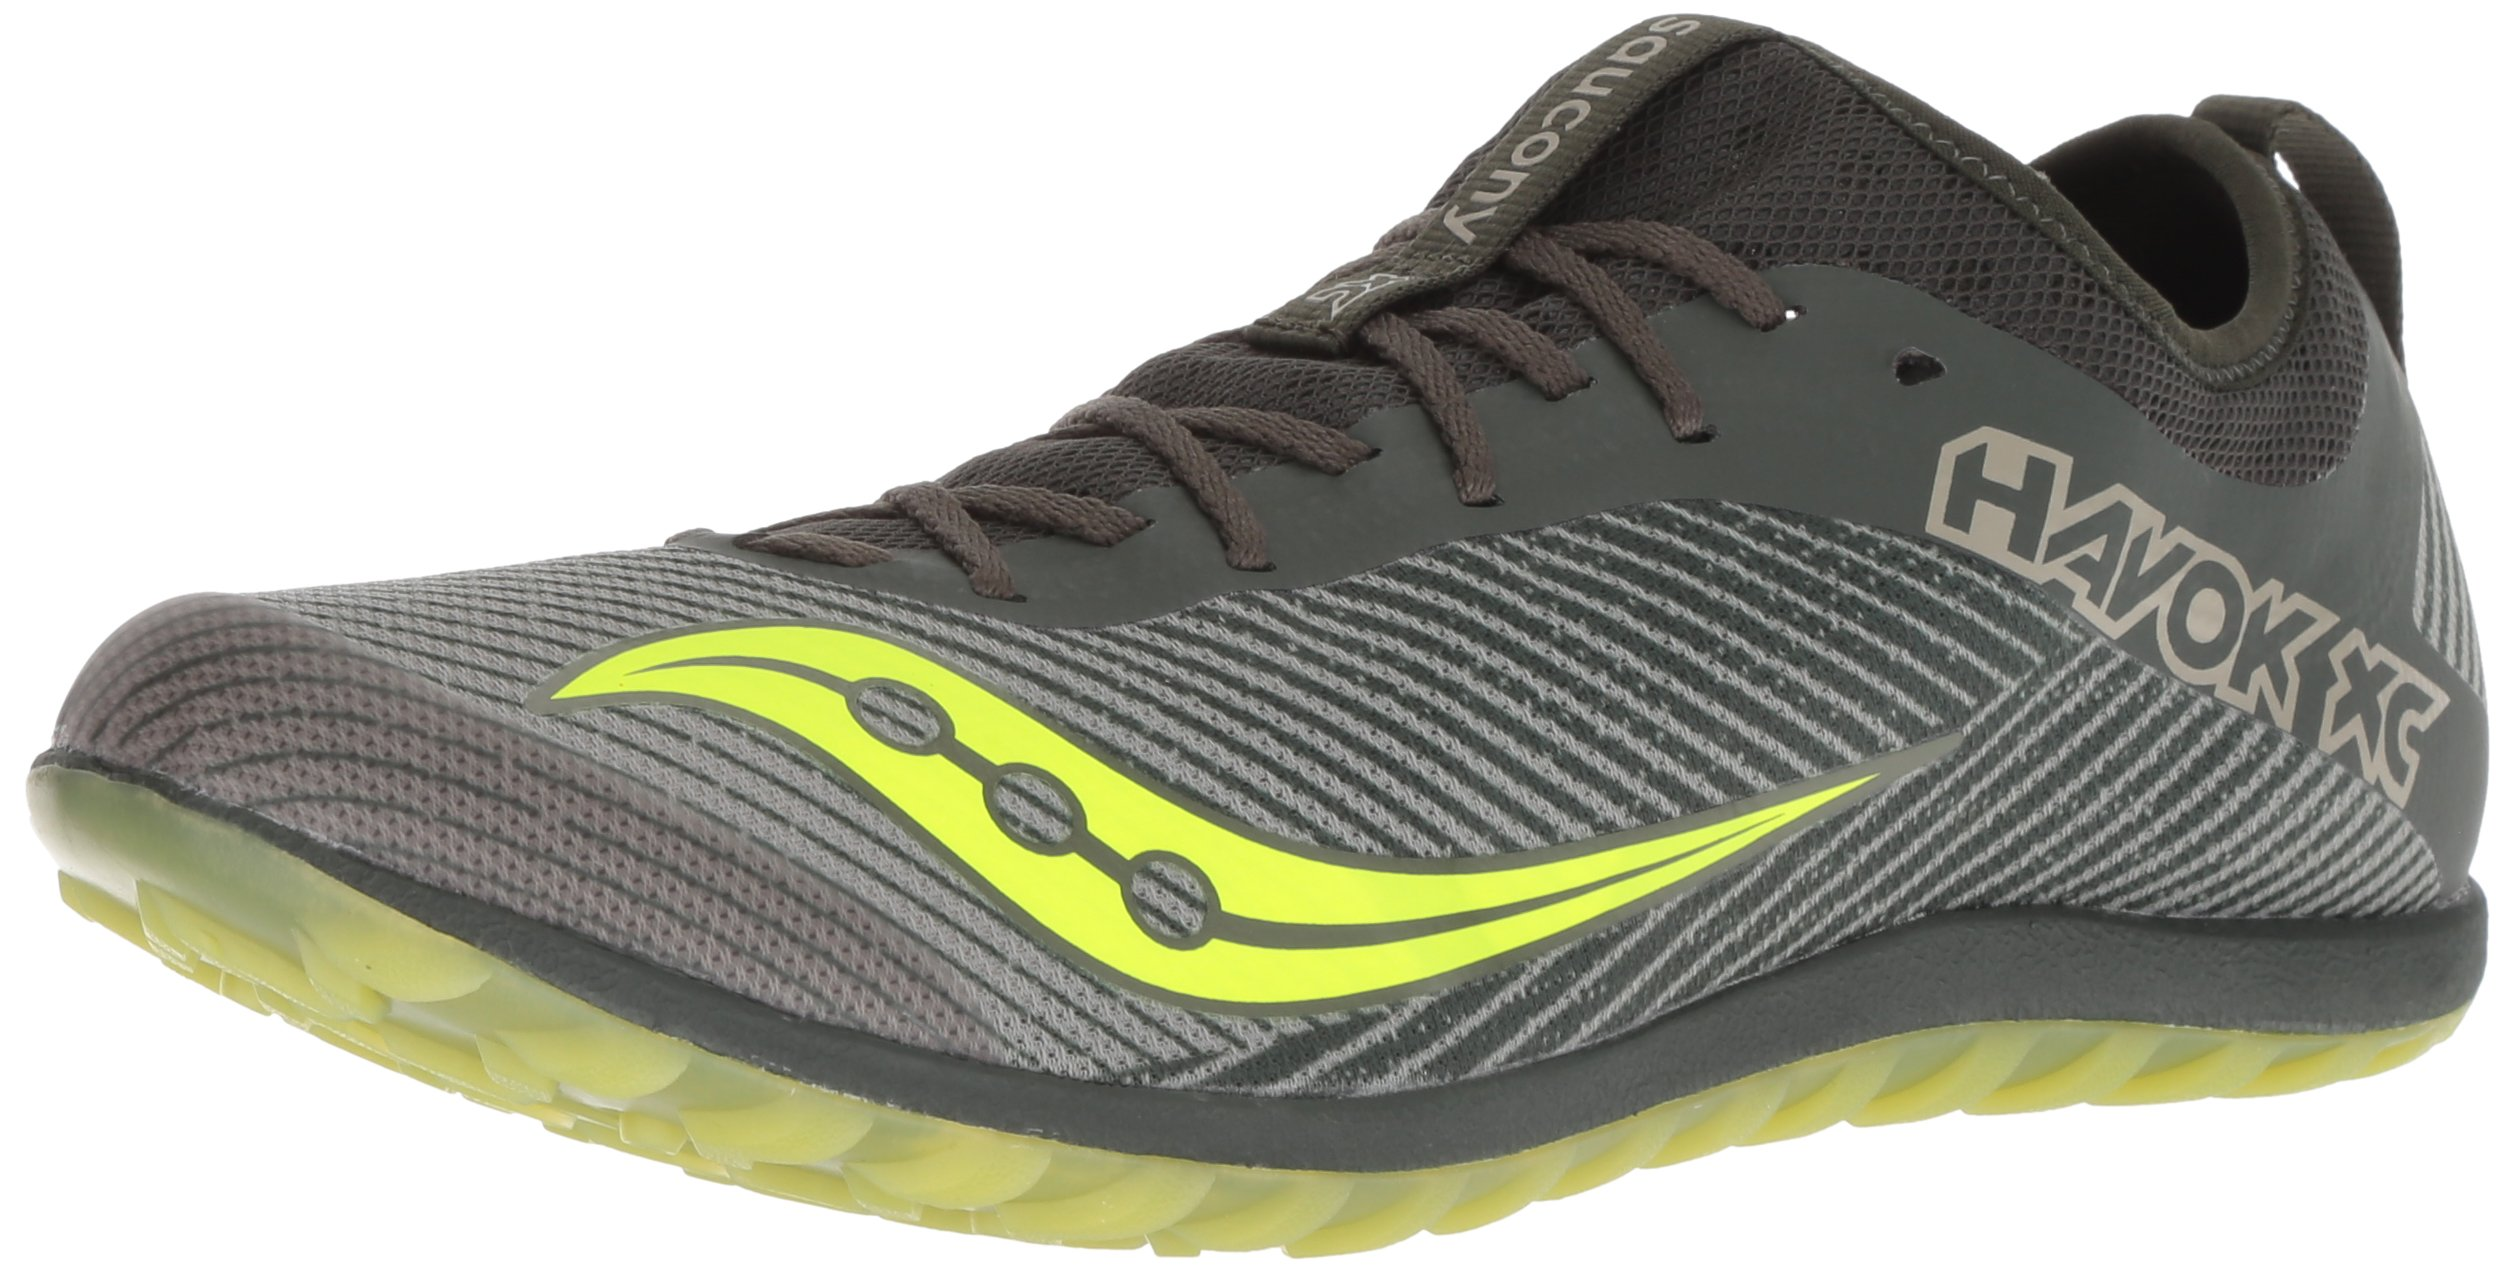 Saucony Men's Havok XC2 Flat Track Shoe, Green/Citron, 13 M US by Saucony